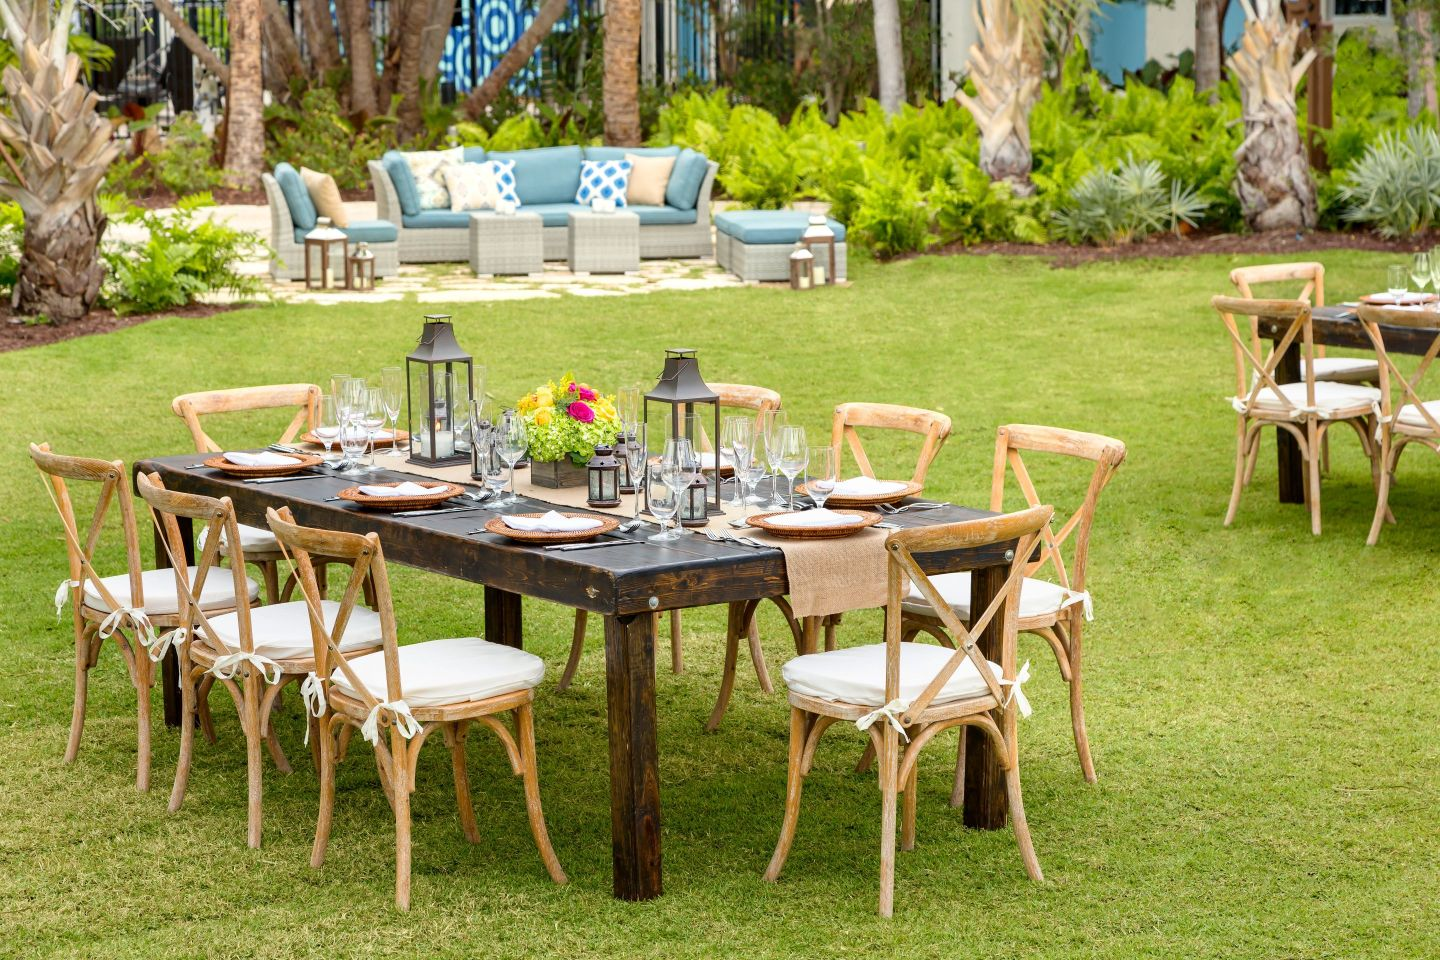 Sunset-Green-Table-Tight-6-1440x960 Coastal Party Inspiration: How to Host a Key West Style Party